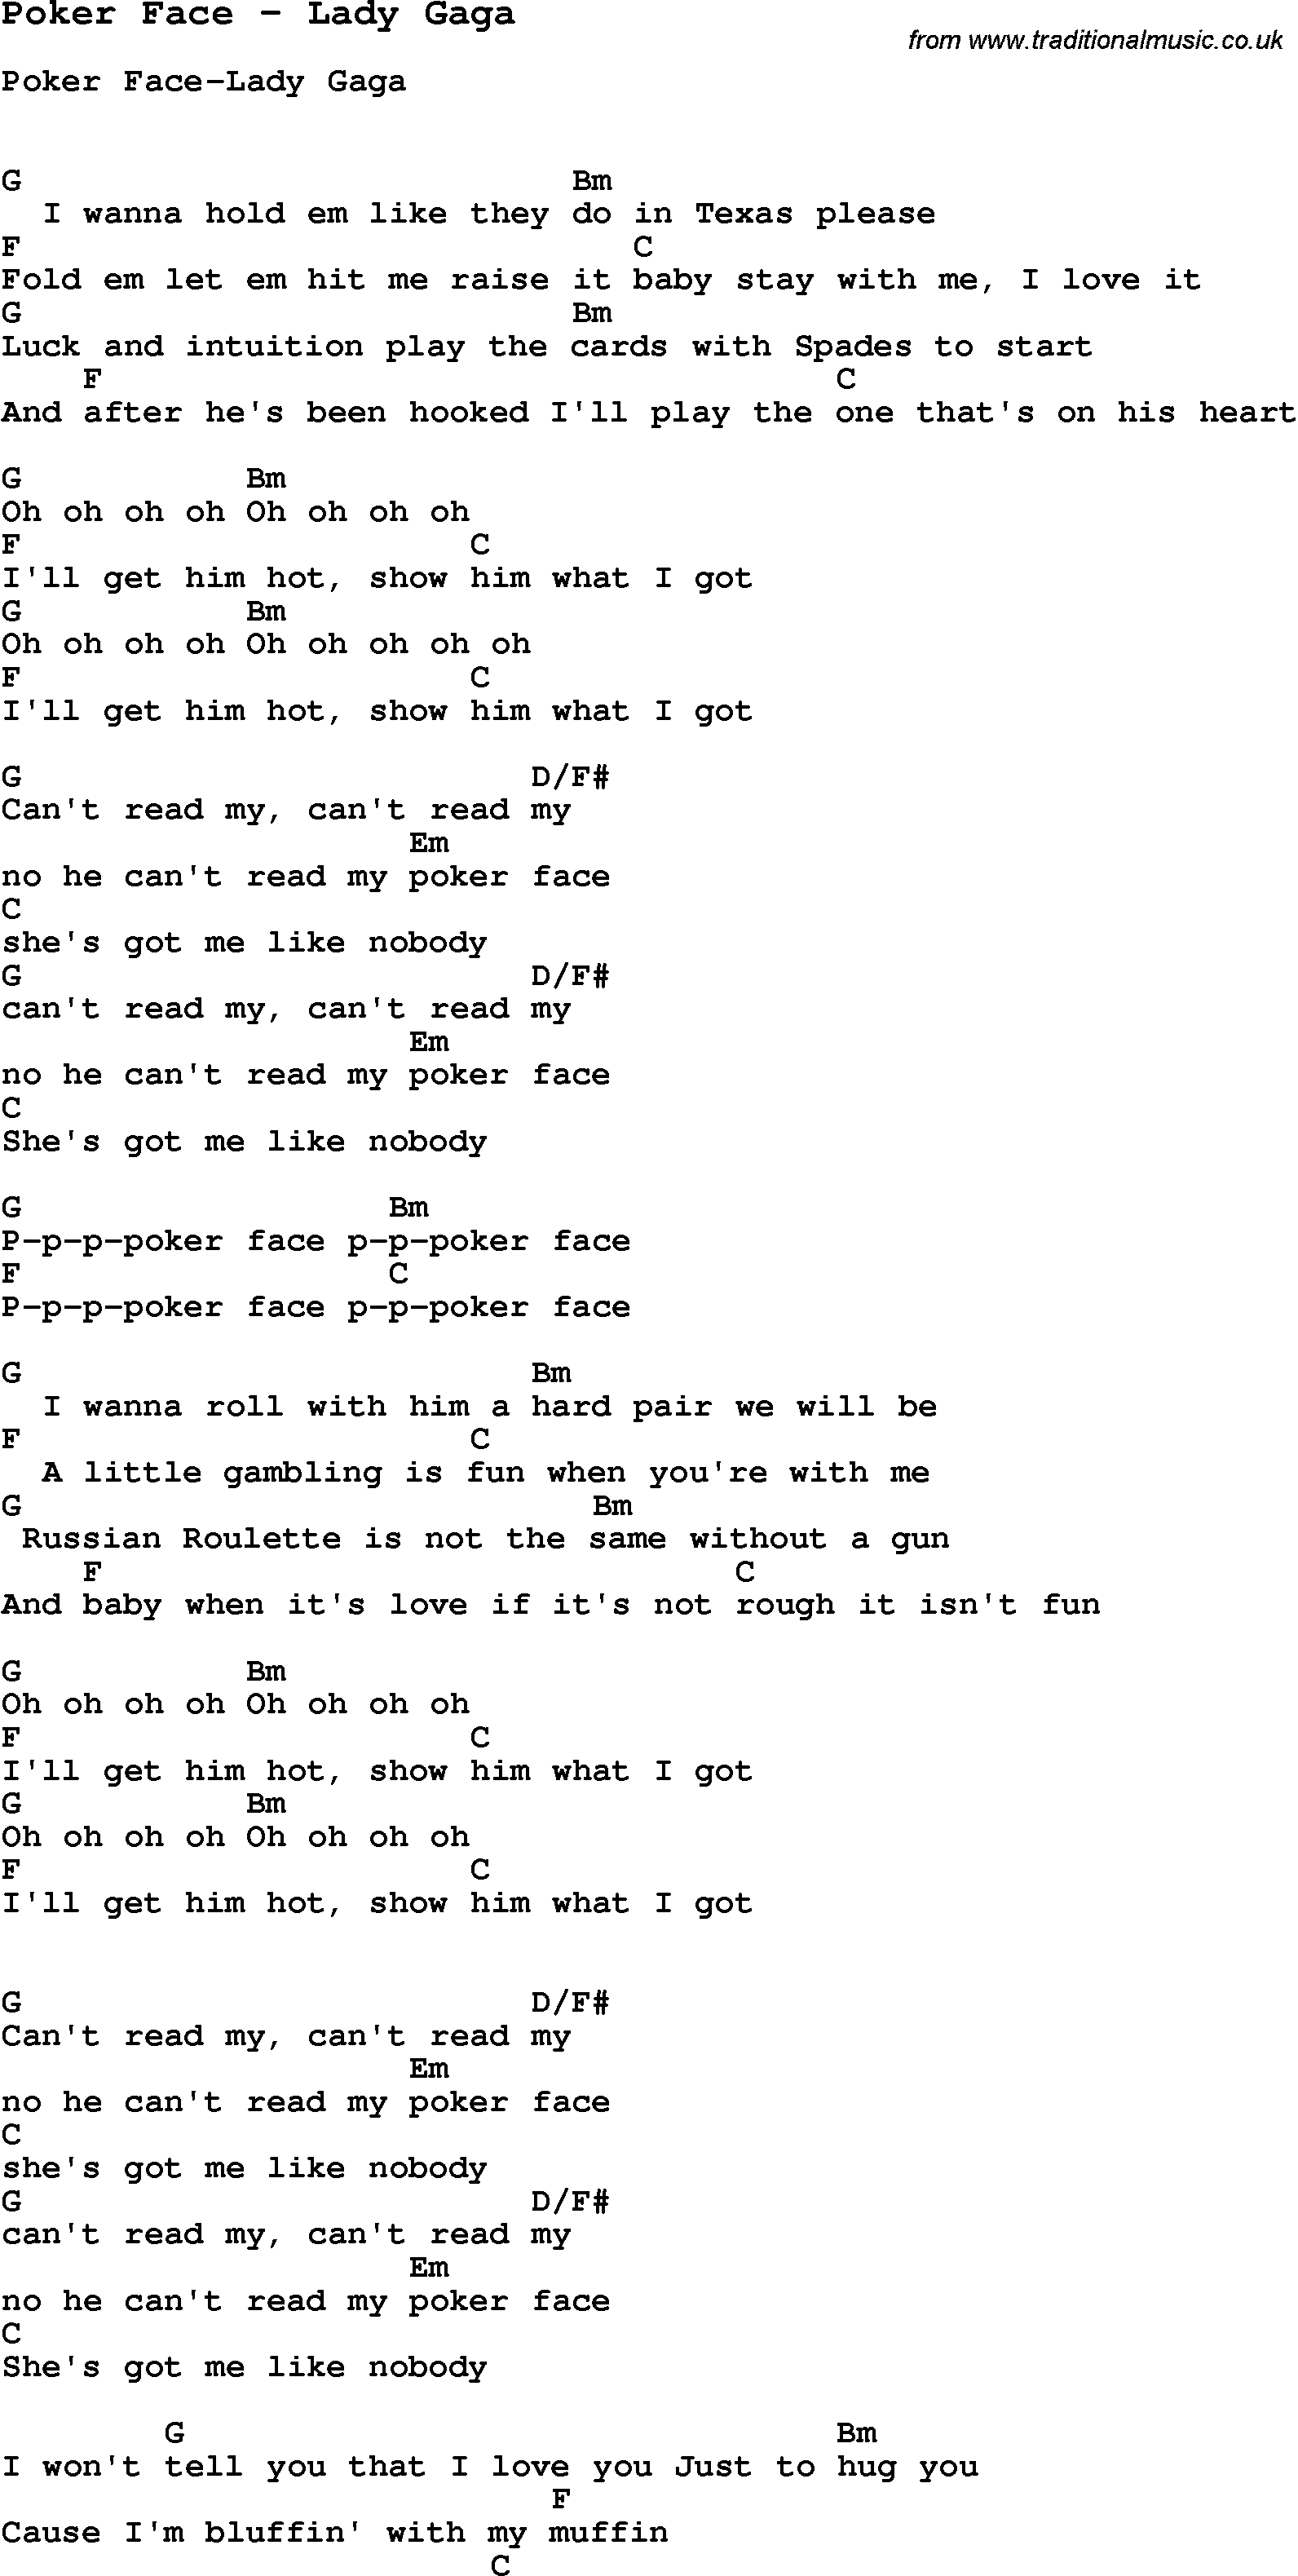 Stay With Me Ukulele Chords Song Poker Face Lady Gaga Song Lyric For Vocal Performance Plus